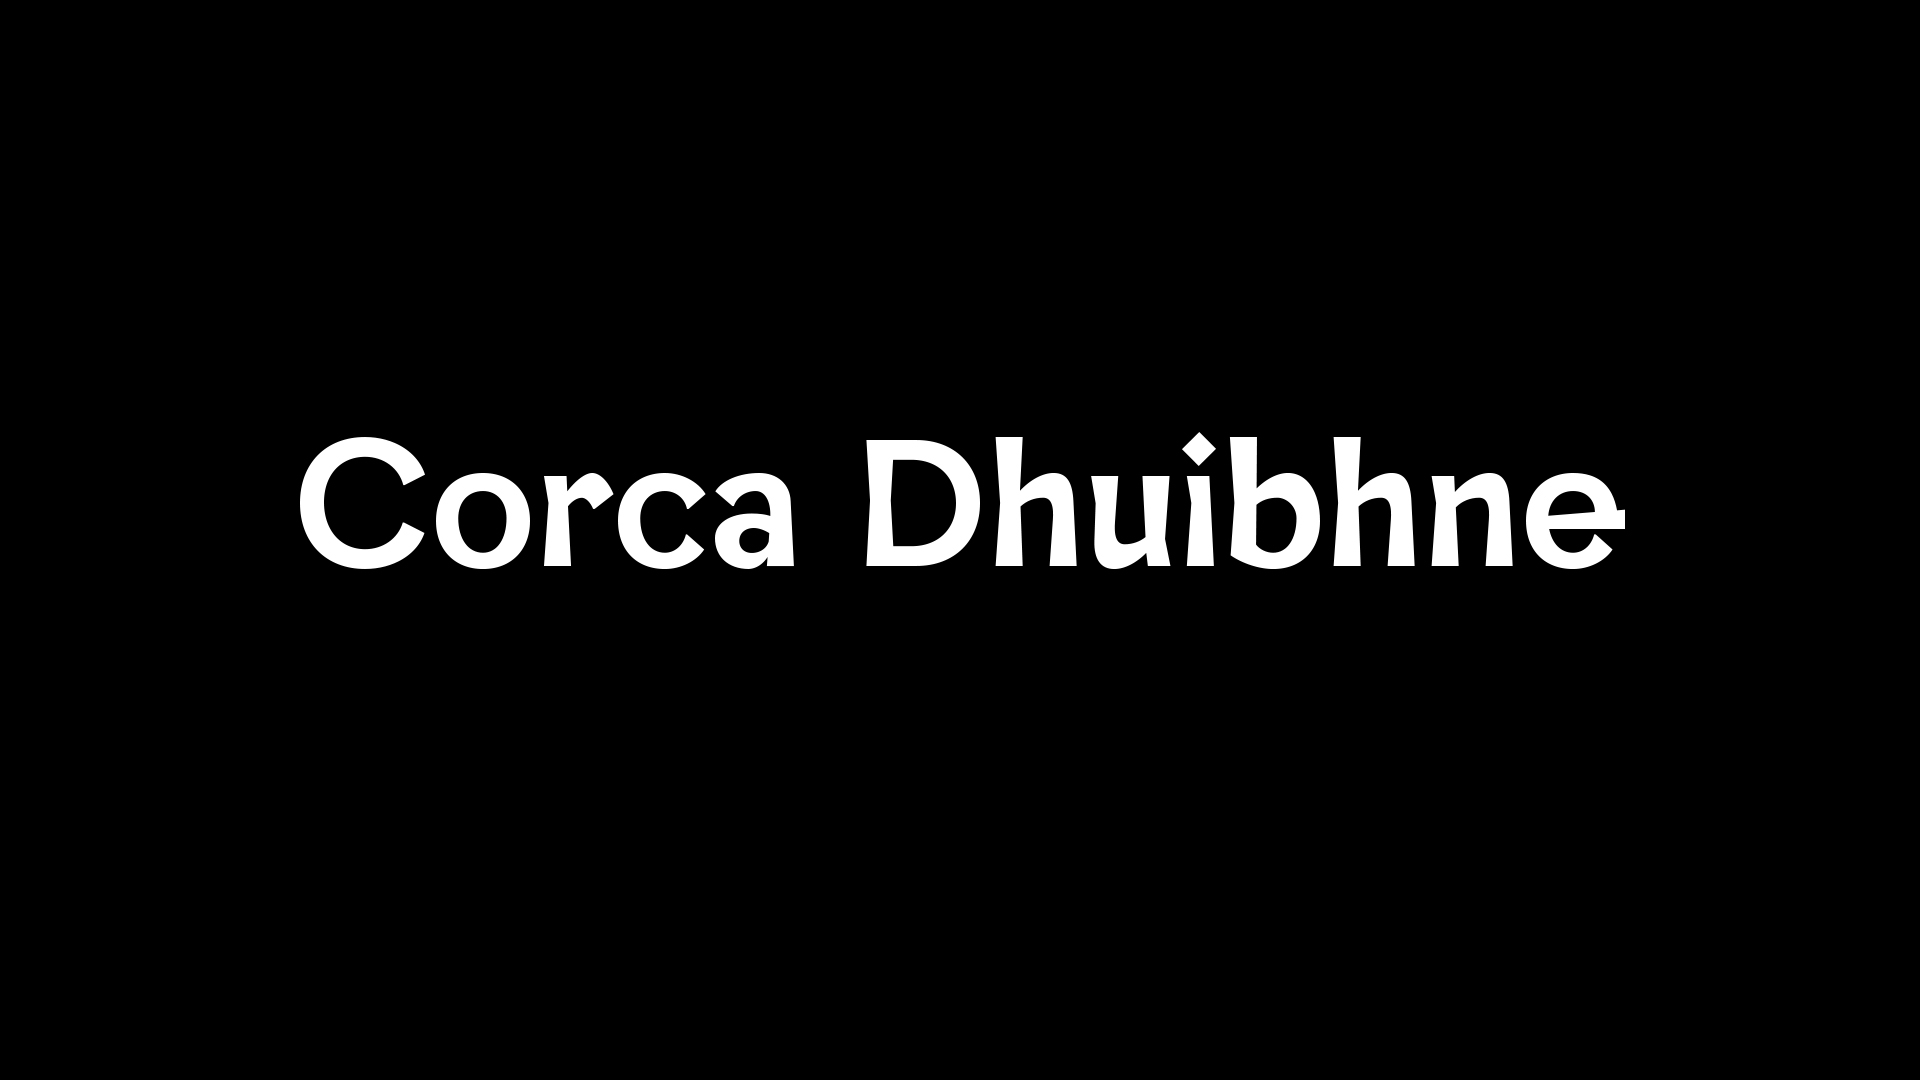 Cover image: Corca Dhuibhne Typeface